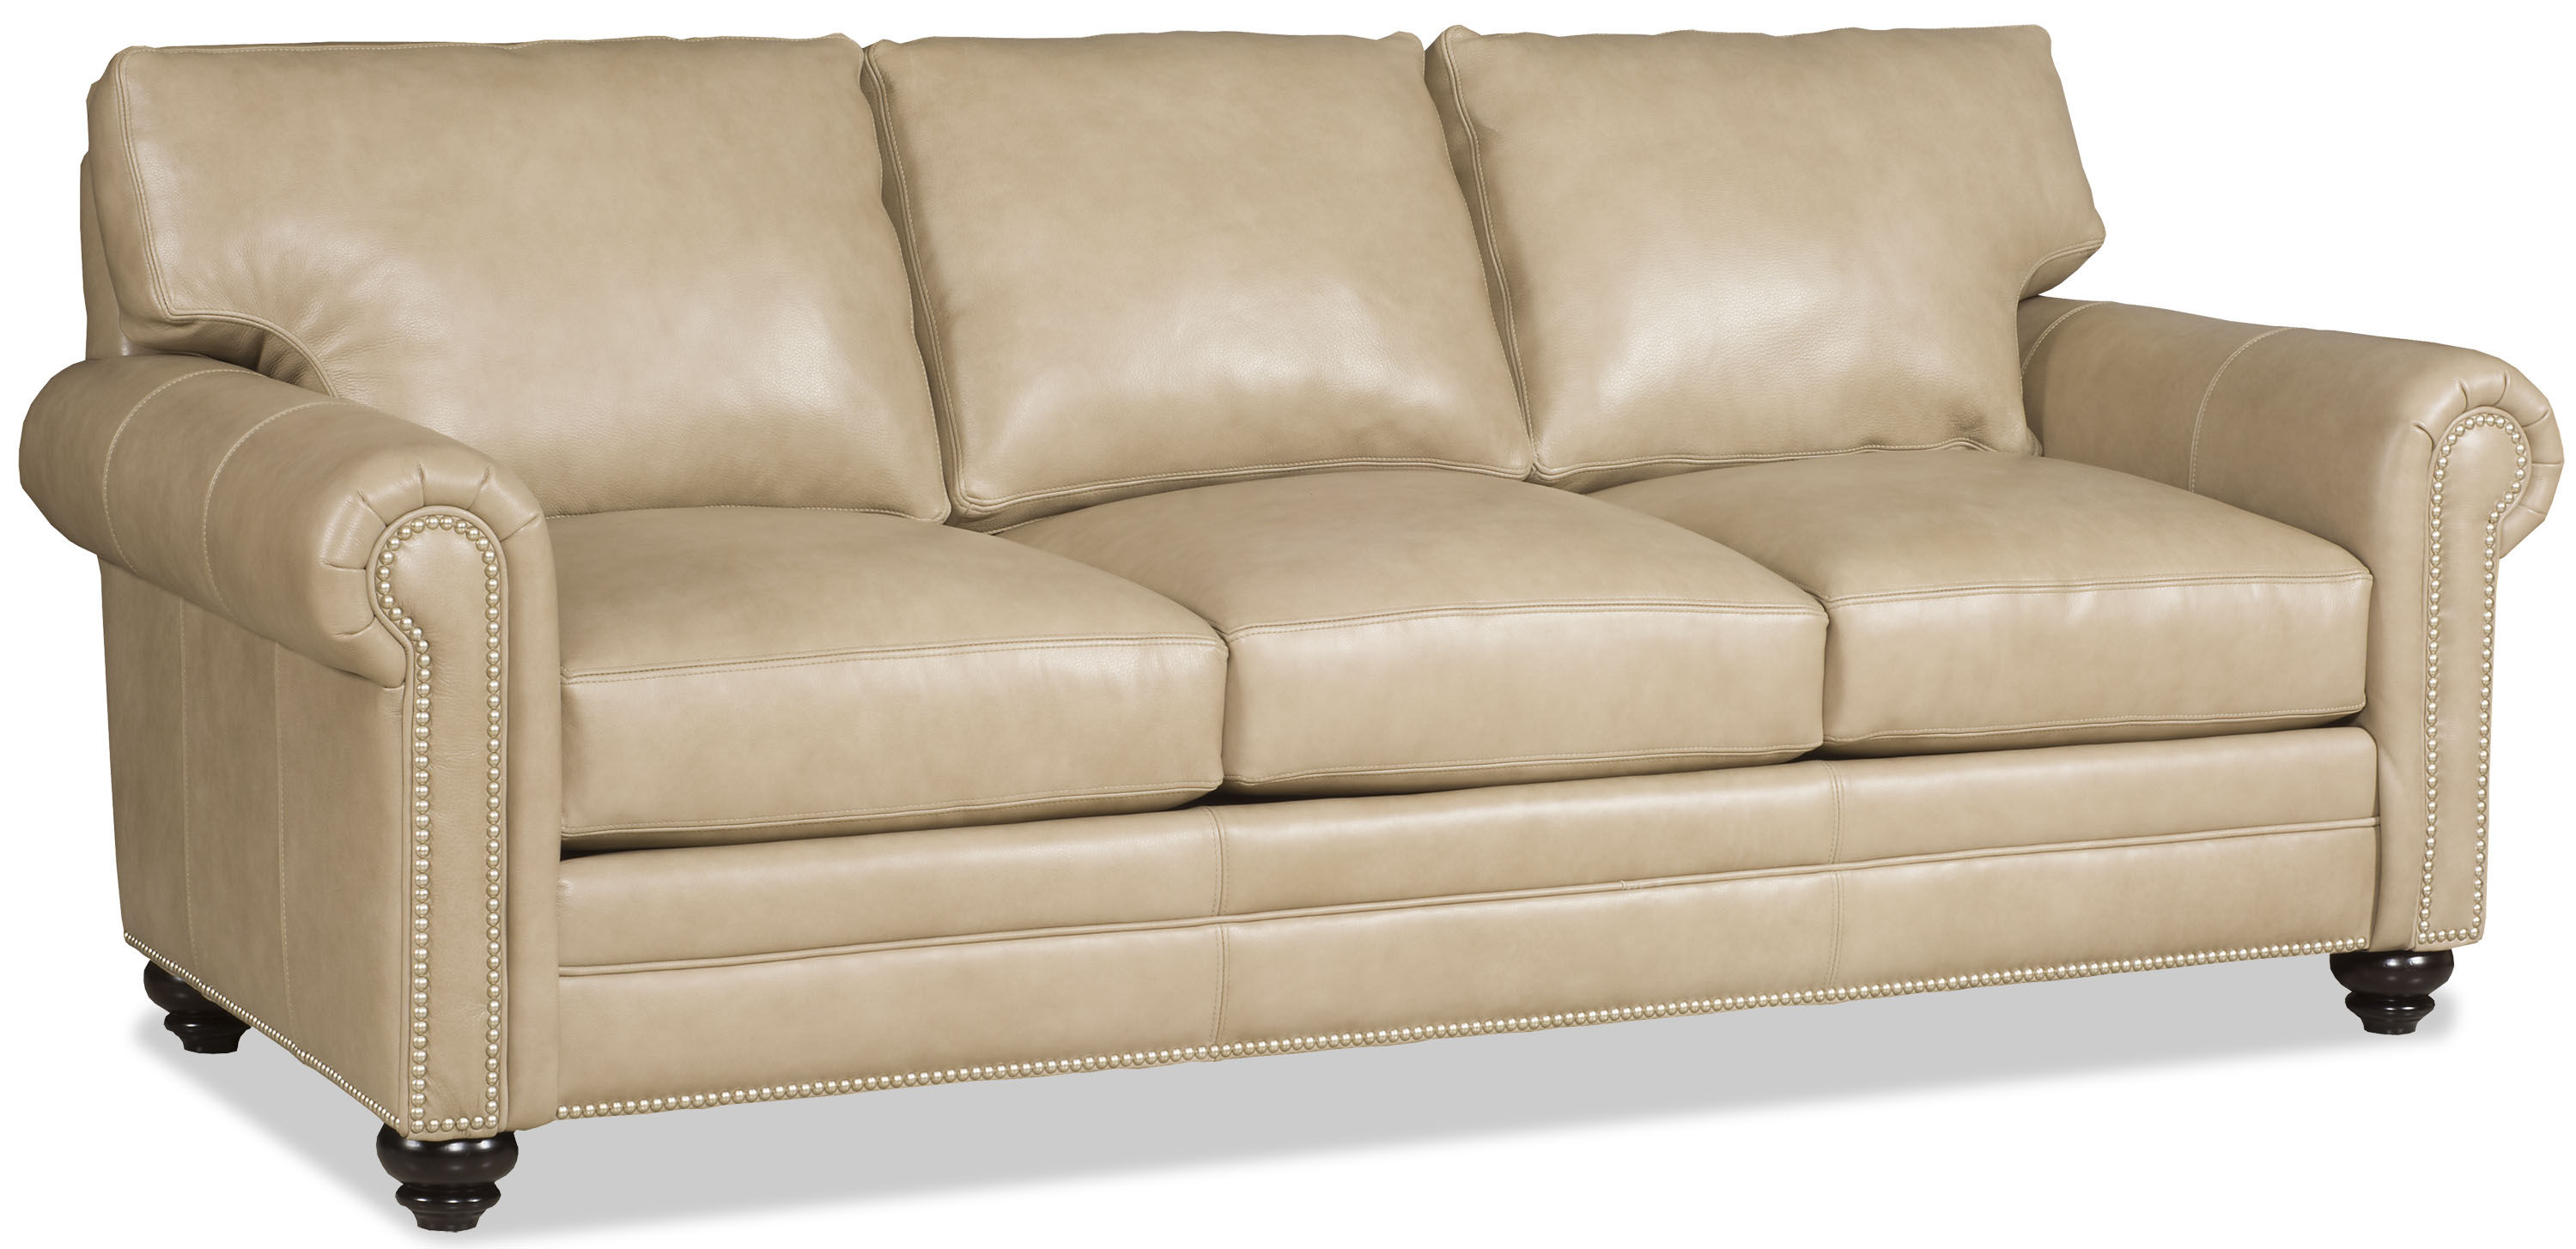 Daire Leather Sofa